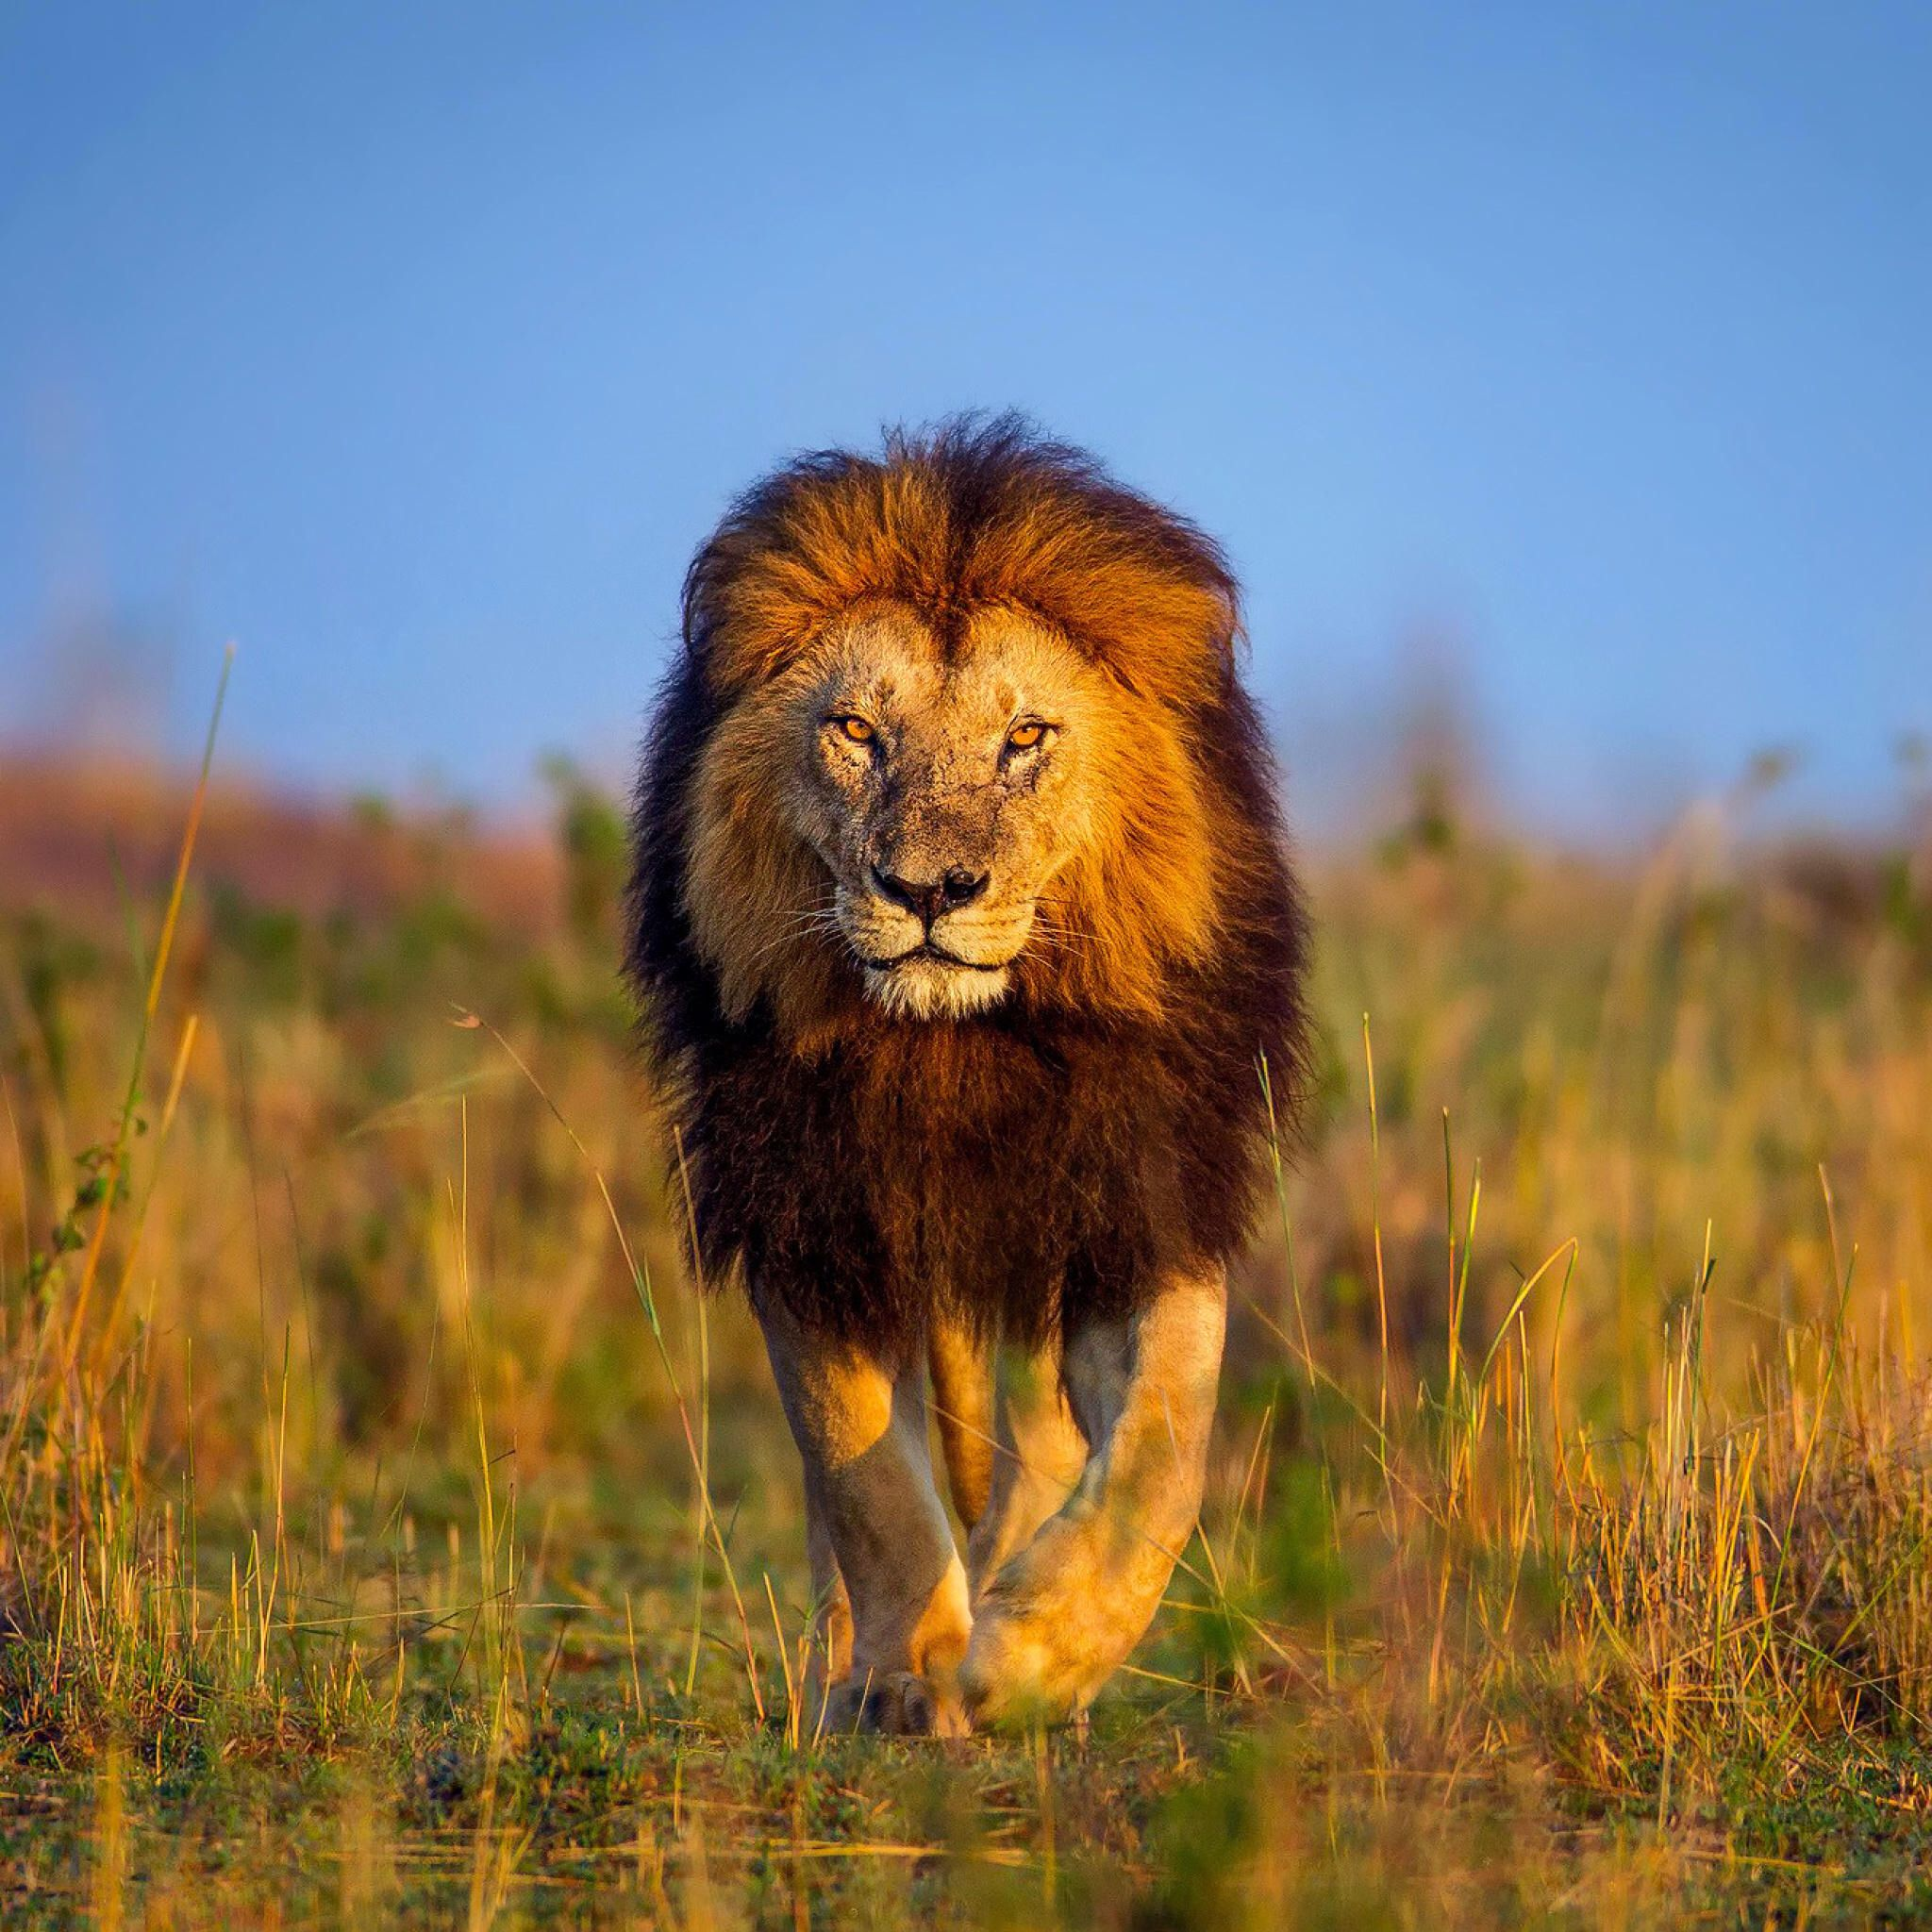 Pin By Shahzad Akram On Lion Lion Wallpaper Lion Africa Lion